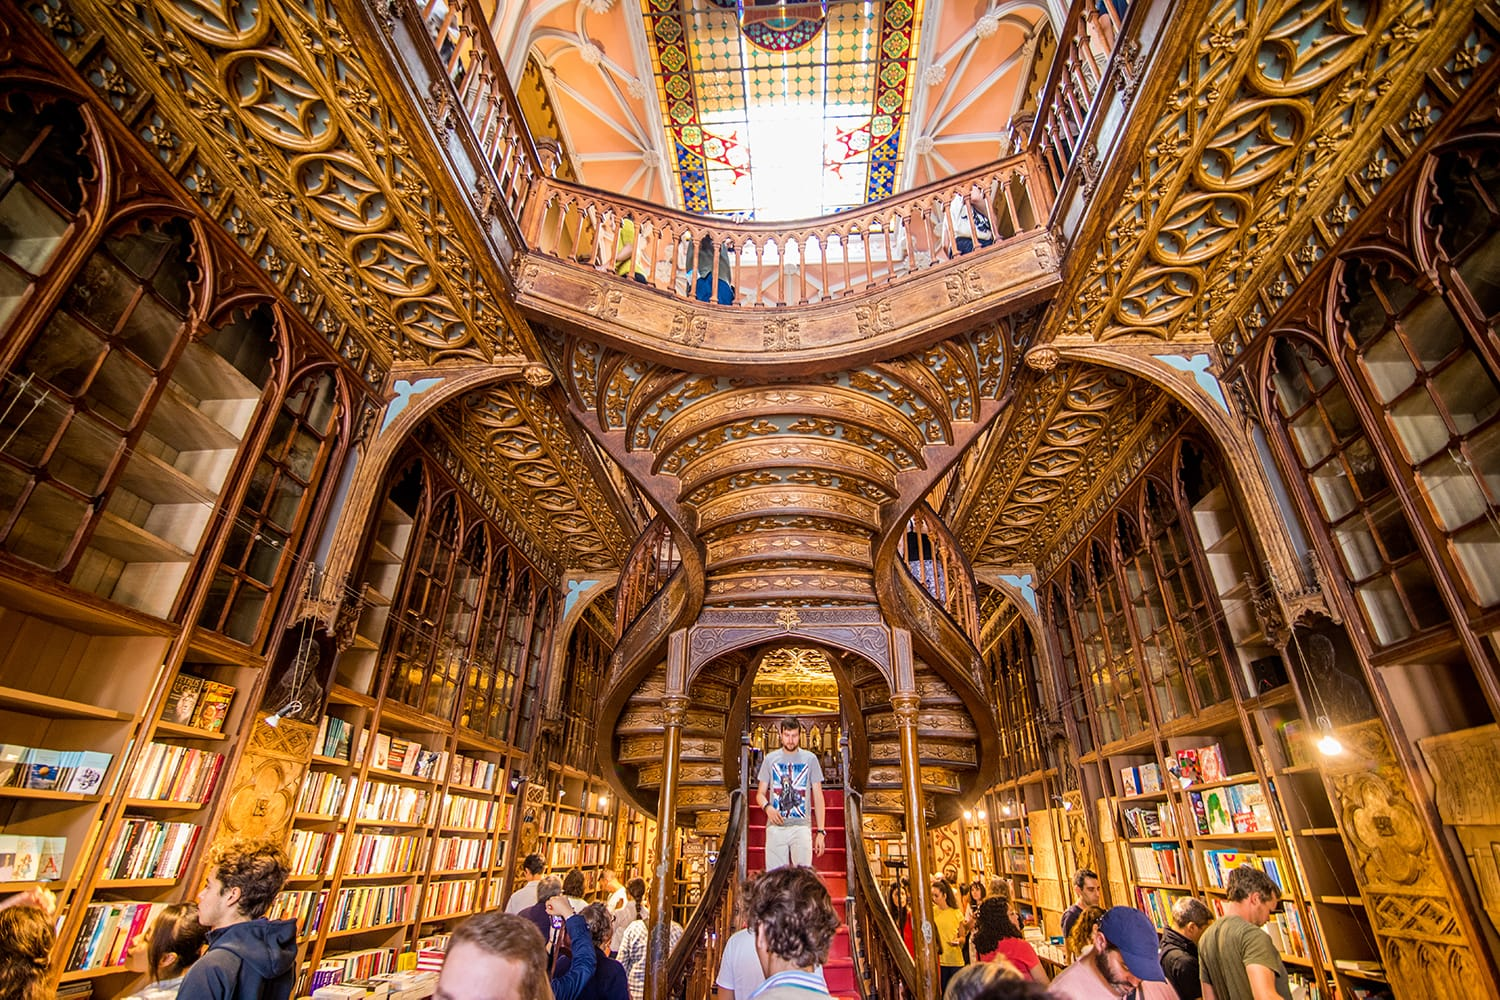 High angle view of stairs in the bookstore Livraria Lello in Porto, Portugal